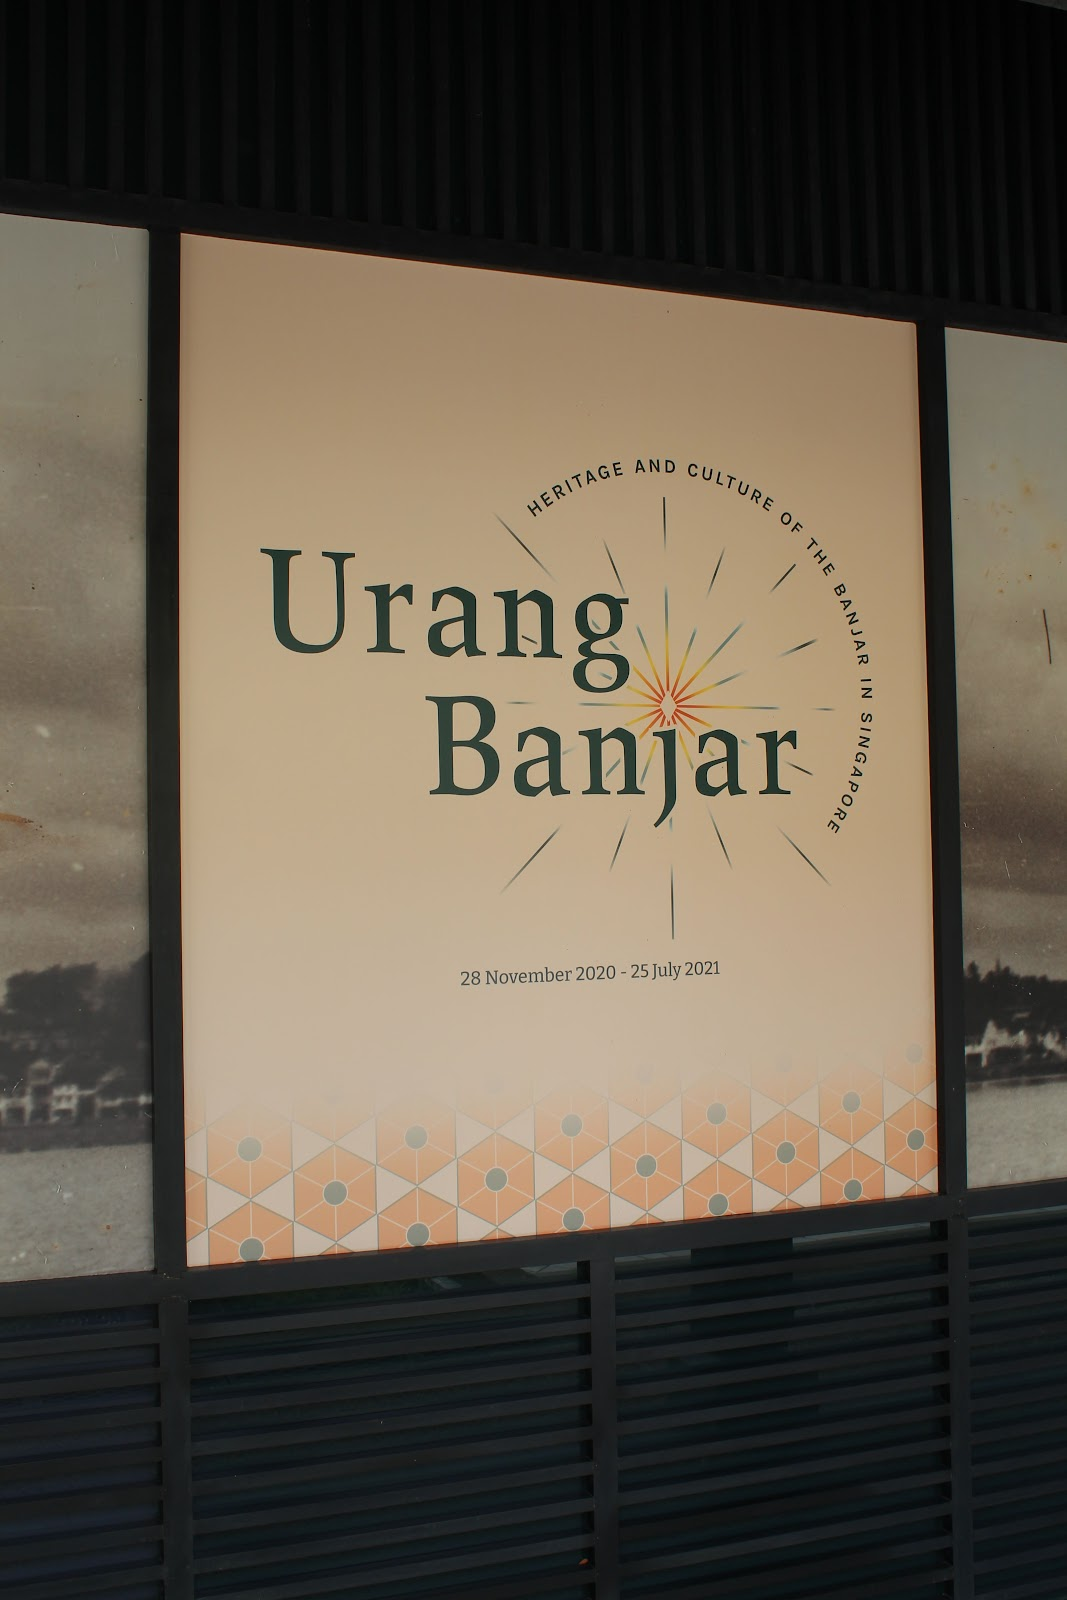 Urang Banjar Exhibition entrance